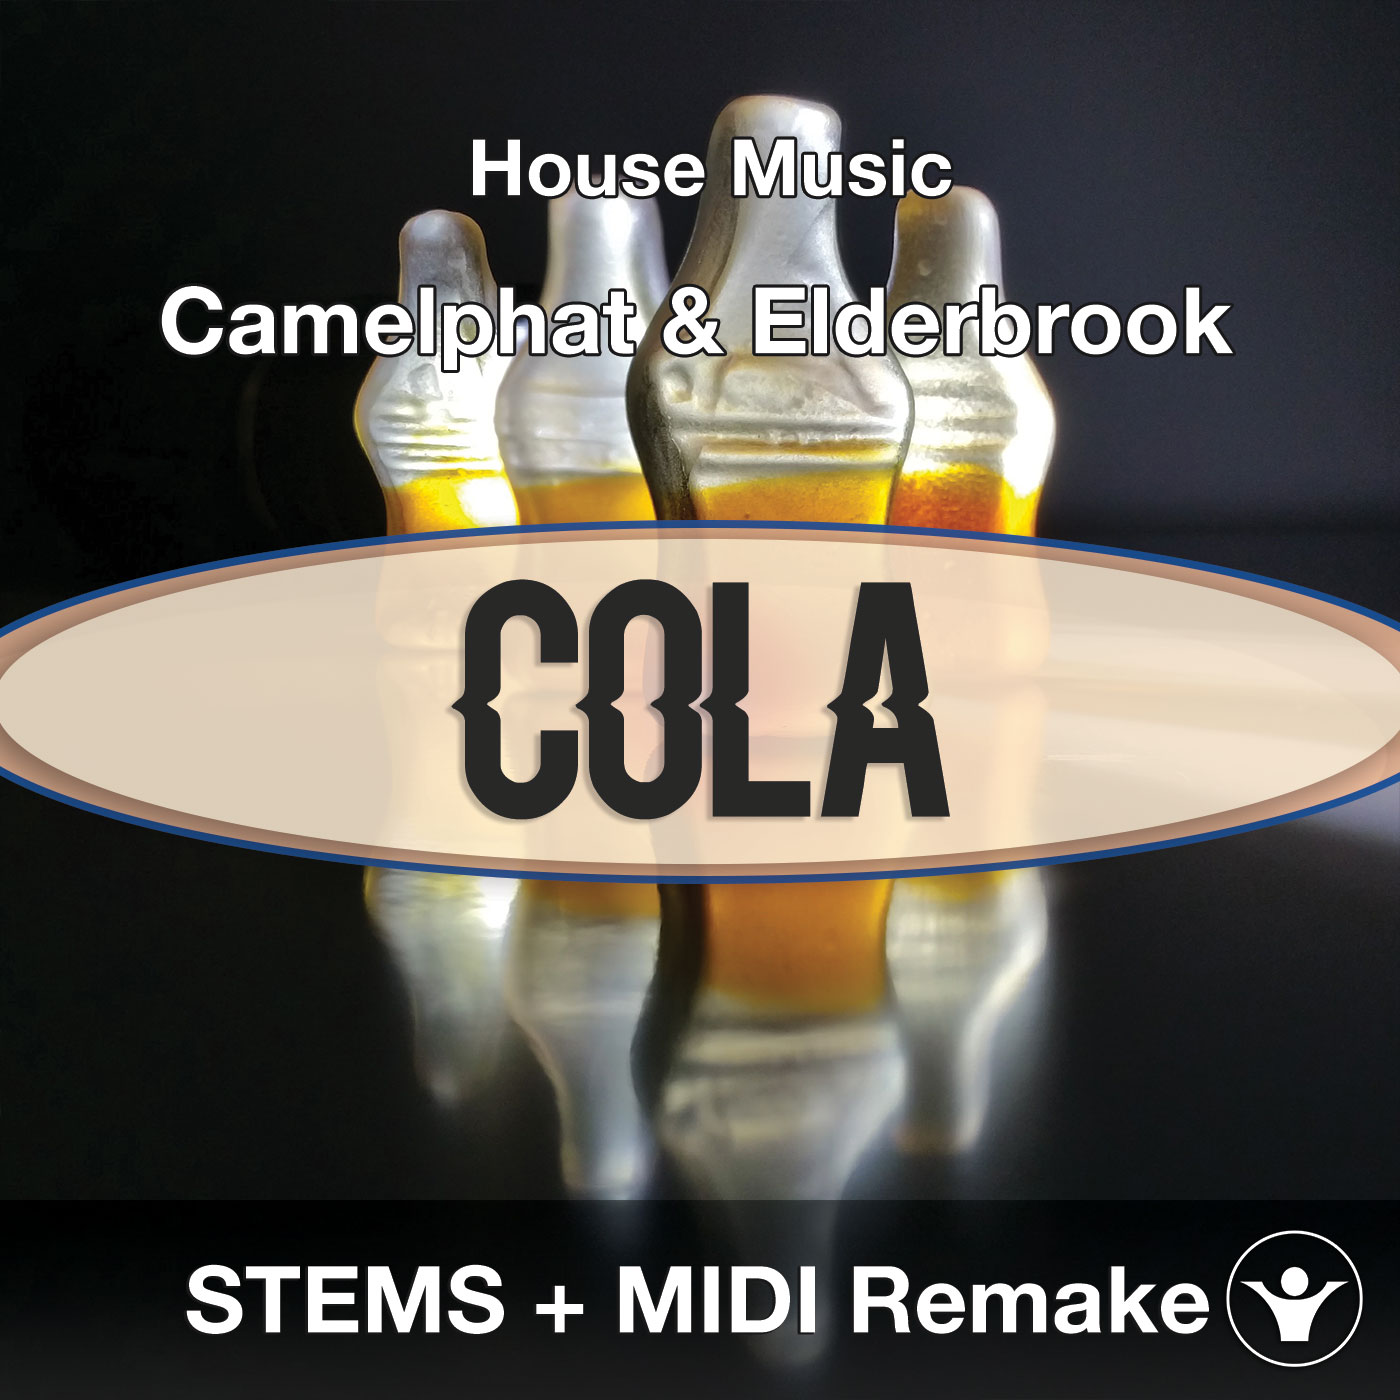 Camelphat & Elderbrook - Cola Full STEMS + MIDI Cover